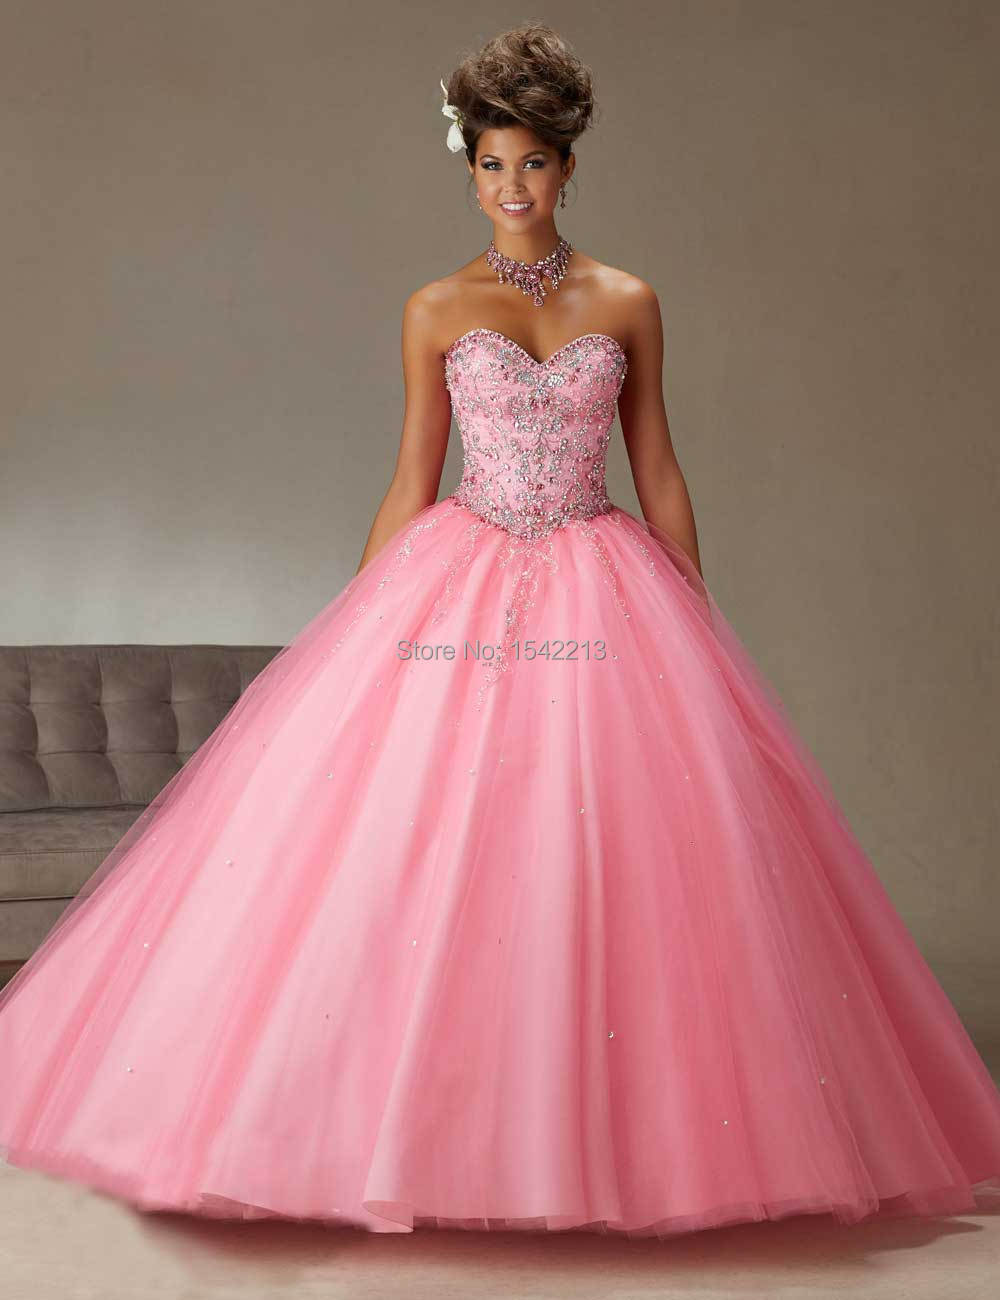 Online Get Cheap Ball Gown Iced Pink Dress -Aliexpress.com ...